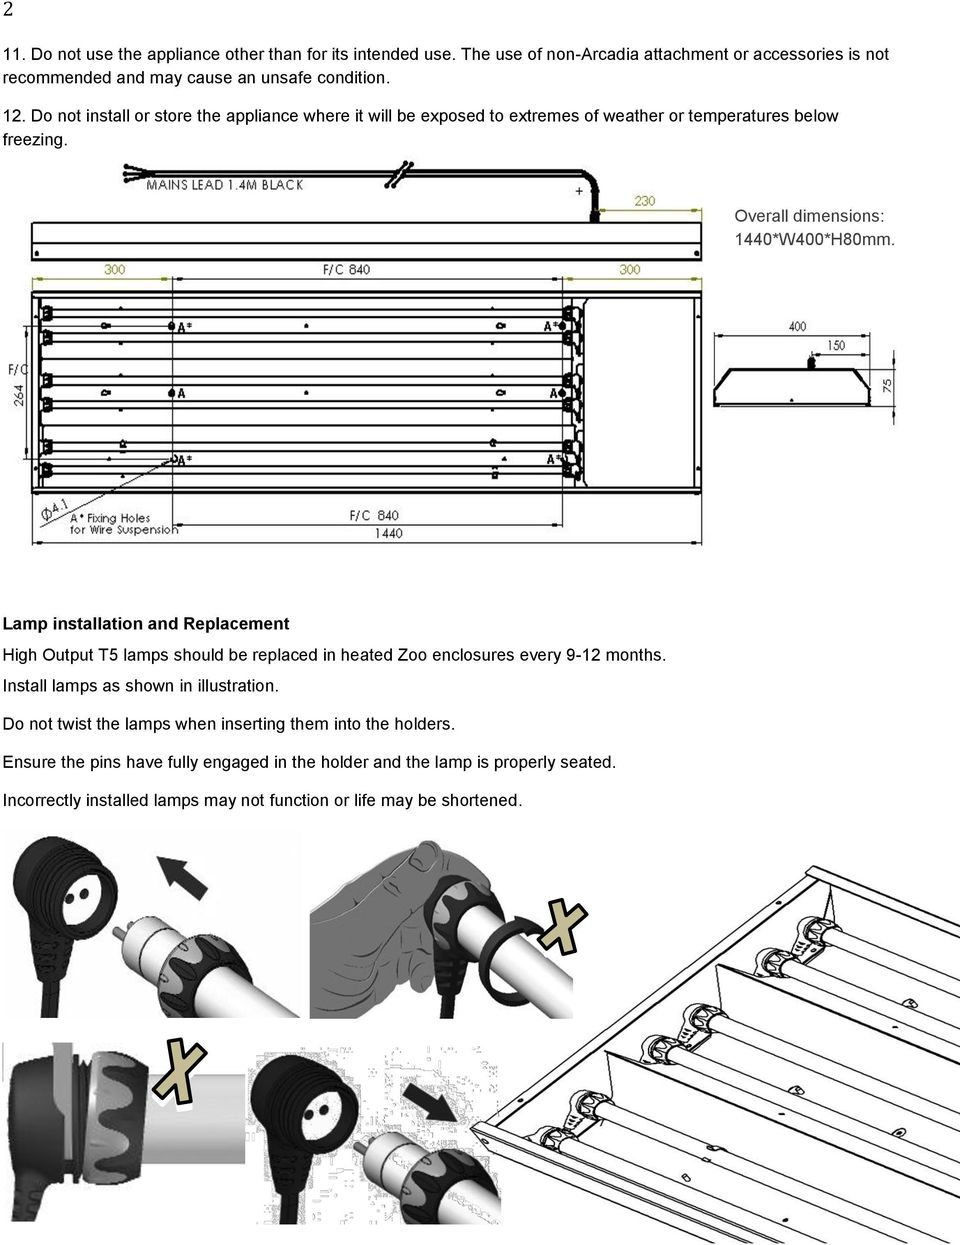 Lamp installation and Replacement High Output T5 lamps should be replaced in heated Zoo enclosures every 9-12 months. Install lamps as shown in illustration.